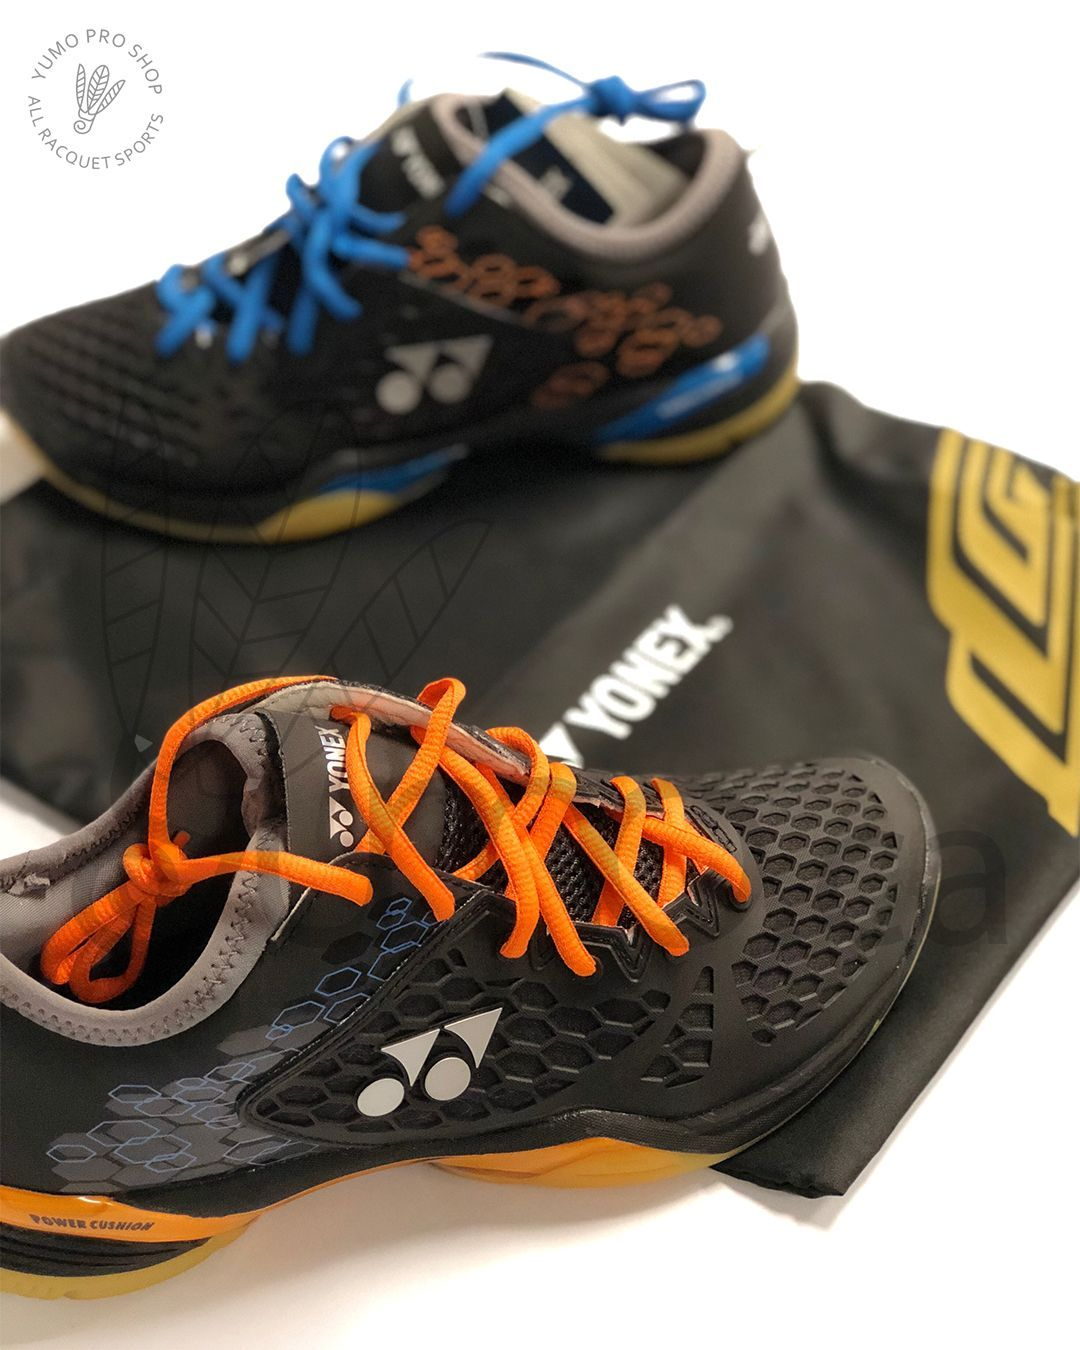 c8630d82092 These limited edition Lee Chong Wei Exclusive shoes are back in stock!!!  Get yours now before they completely sell out.